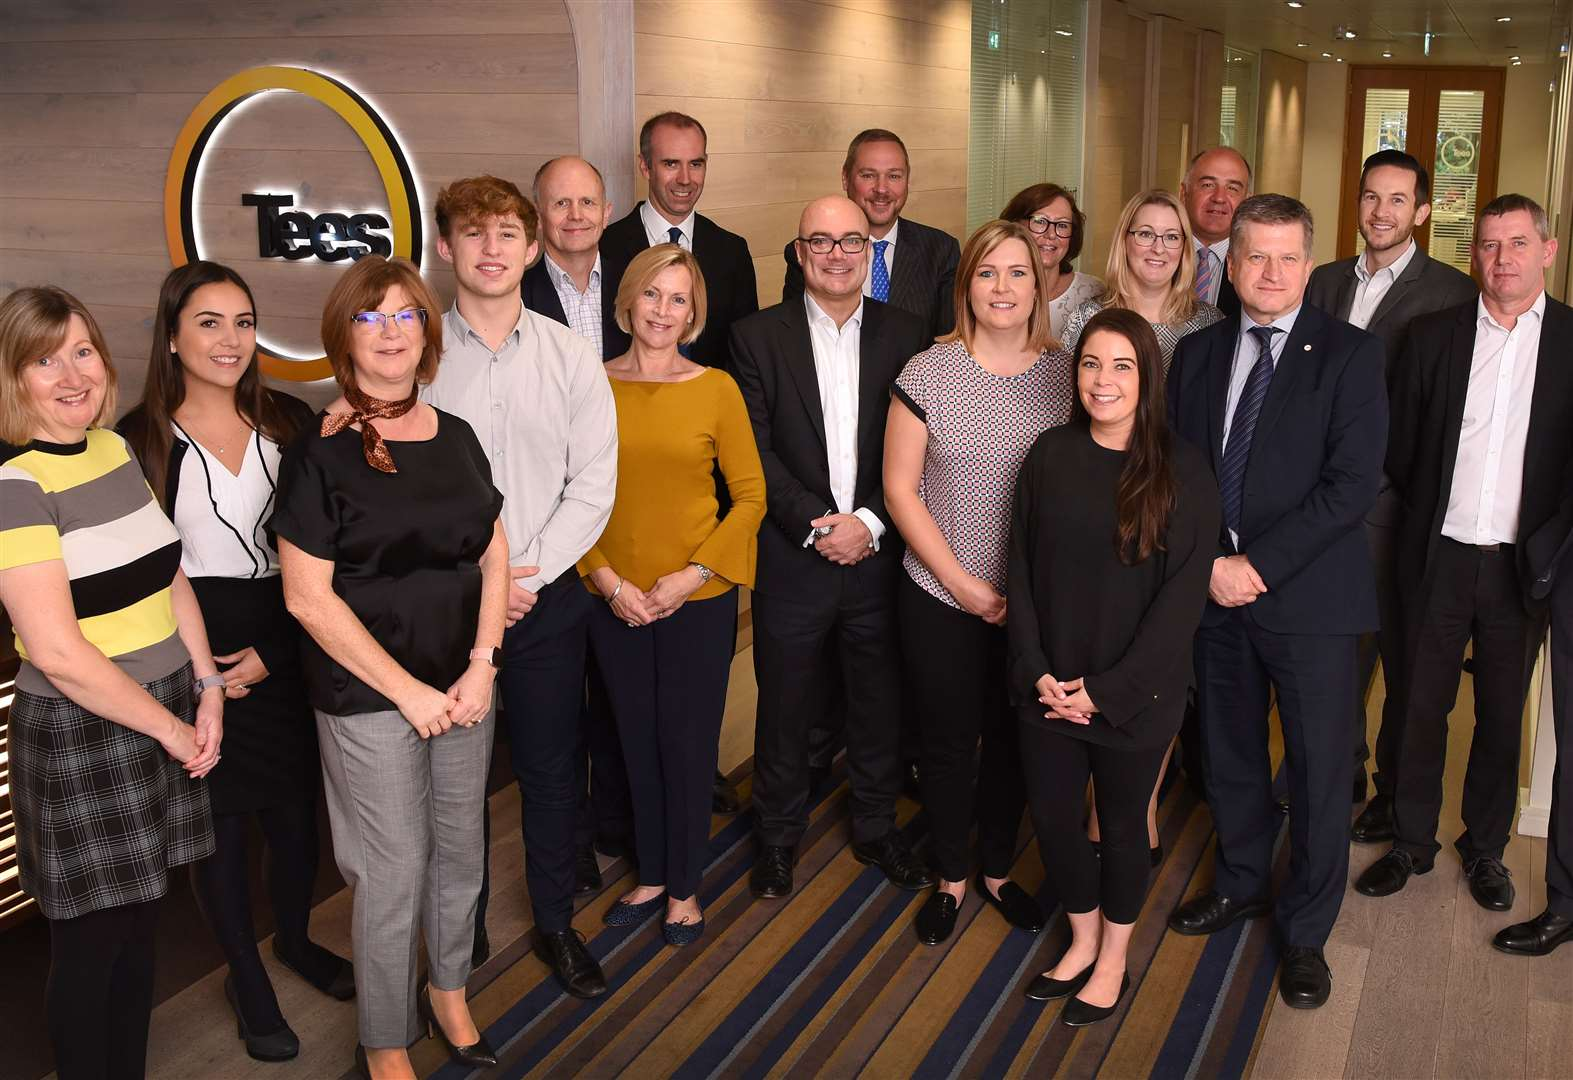 Corporate chartered status achieved by Tees Financial